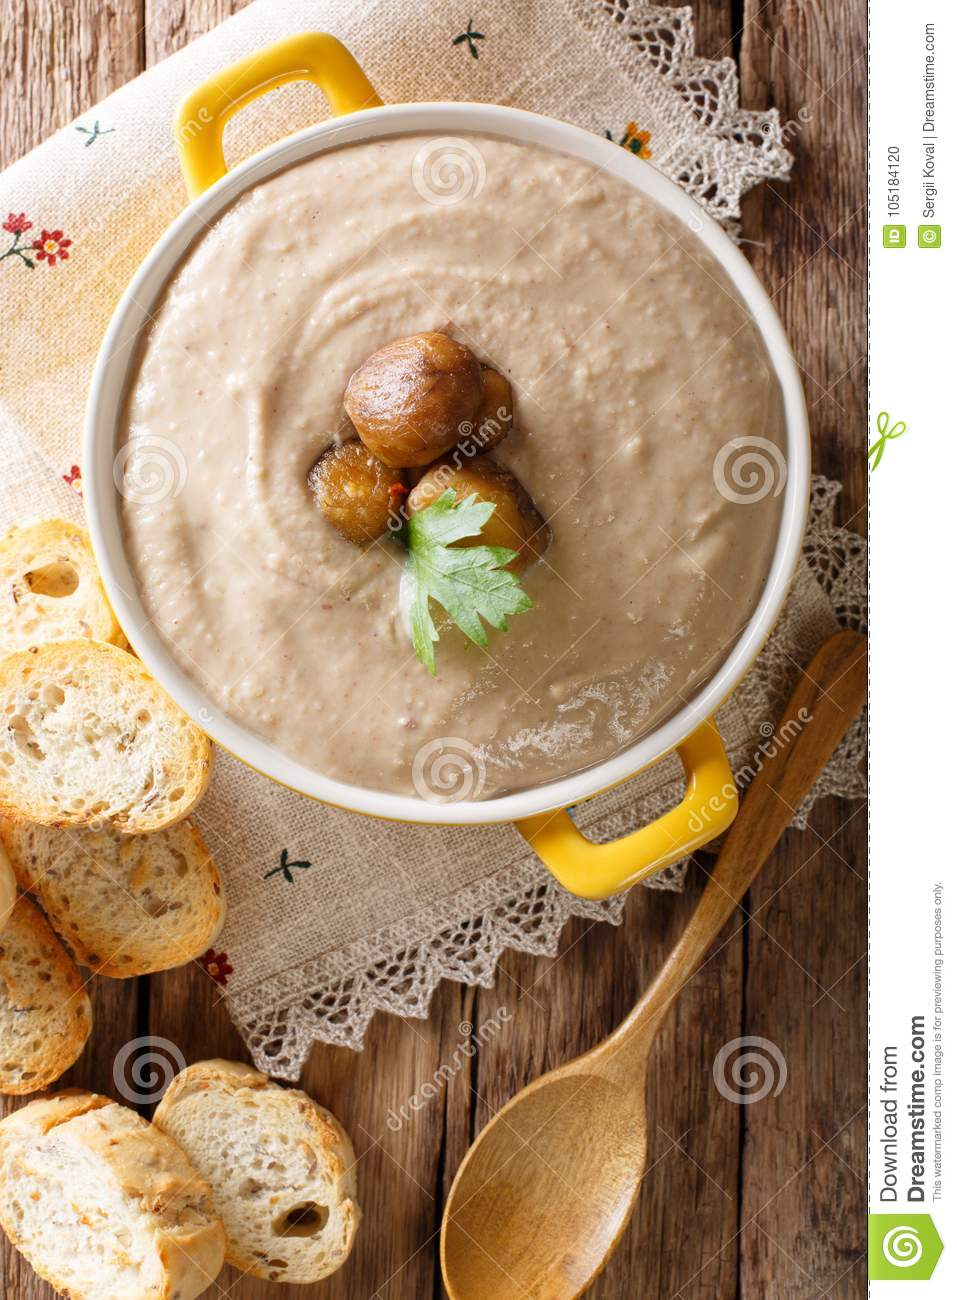 Homemade cream chestnut soup in a saucepan close-up. Vertical to